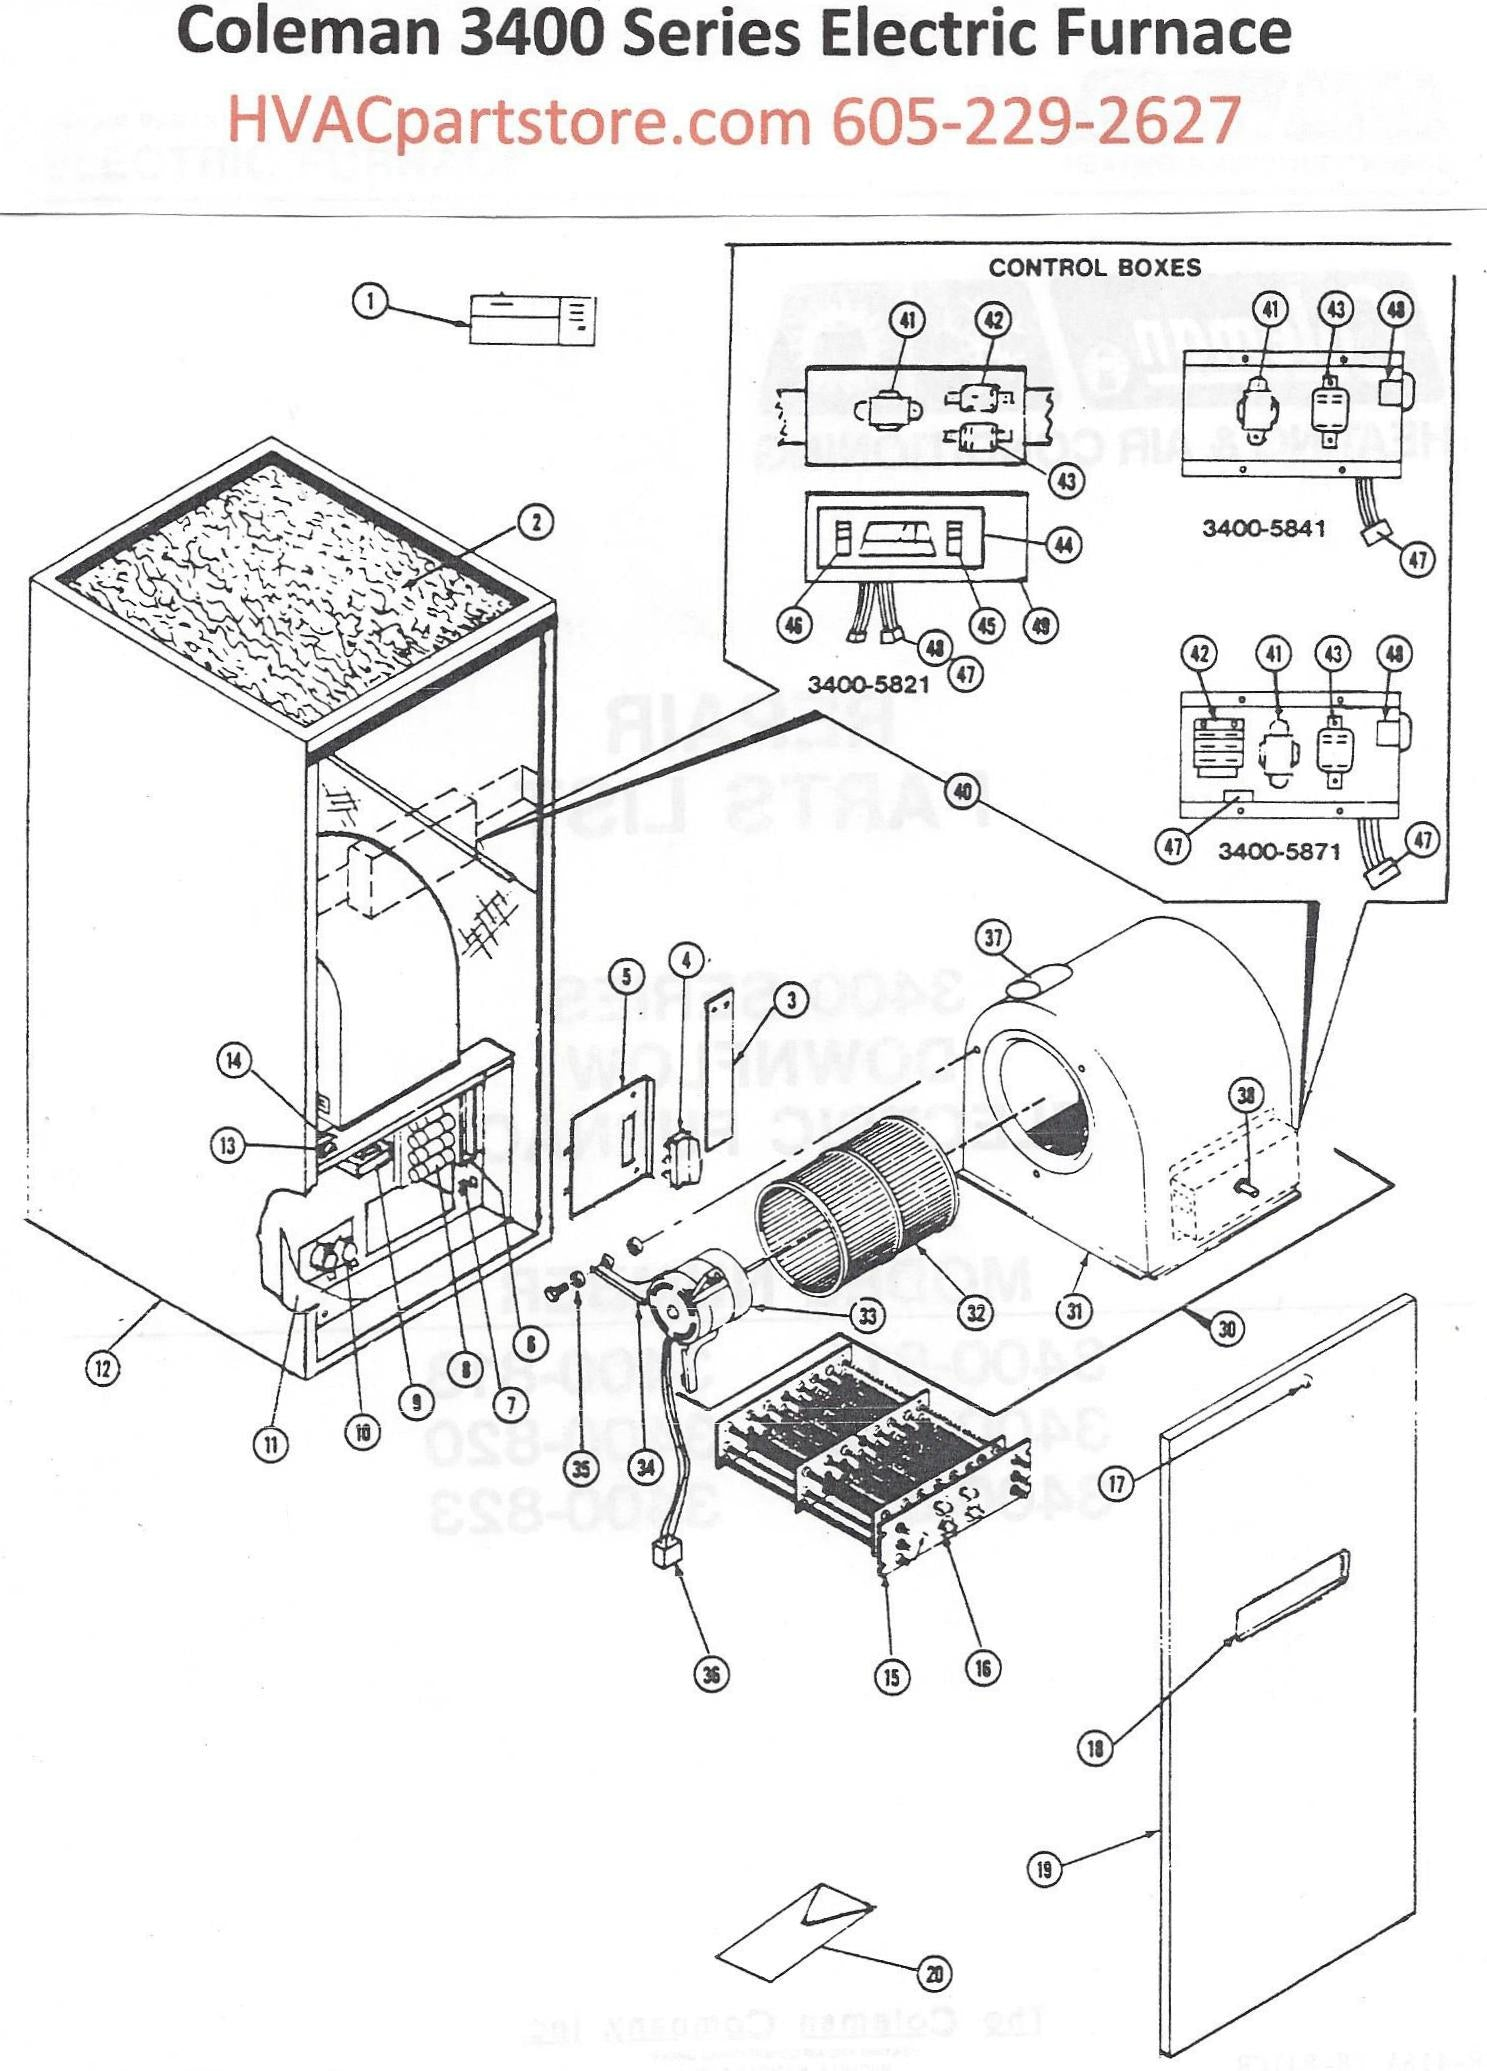 3400 8SeriesDiagram_c66278d3 664a 4321 8615 483111636a4e?1818840816544769902 heat sequencer wiring diagram sequencer circuit diagram \u2022 free Coleman Mobile Home Furnace Schematics at gsmx.co